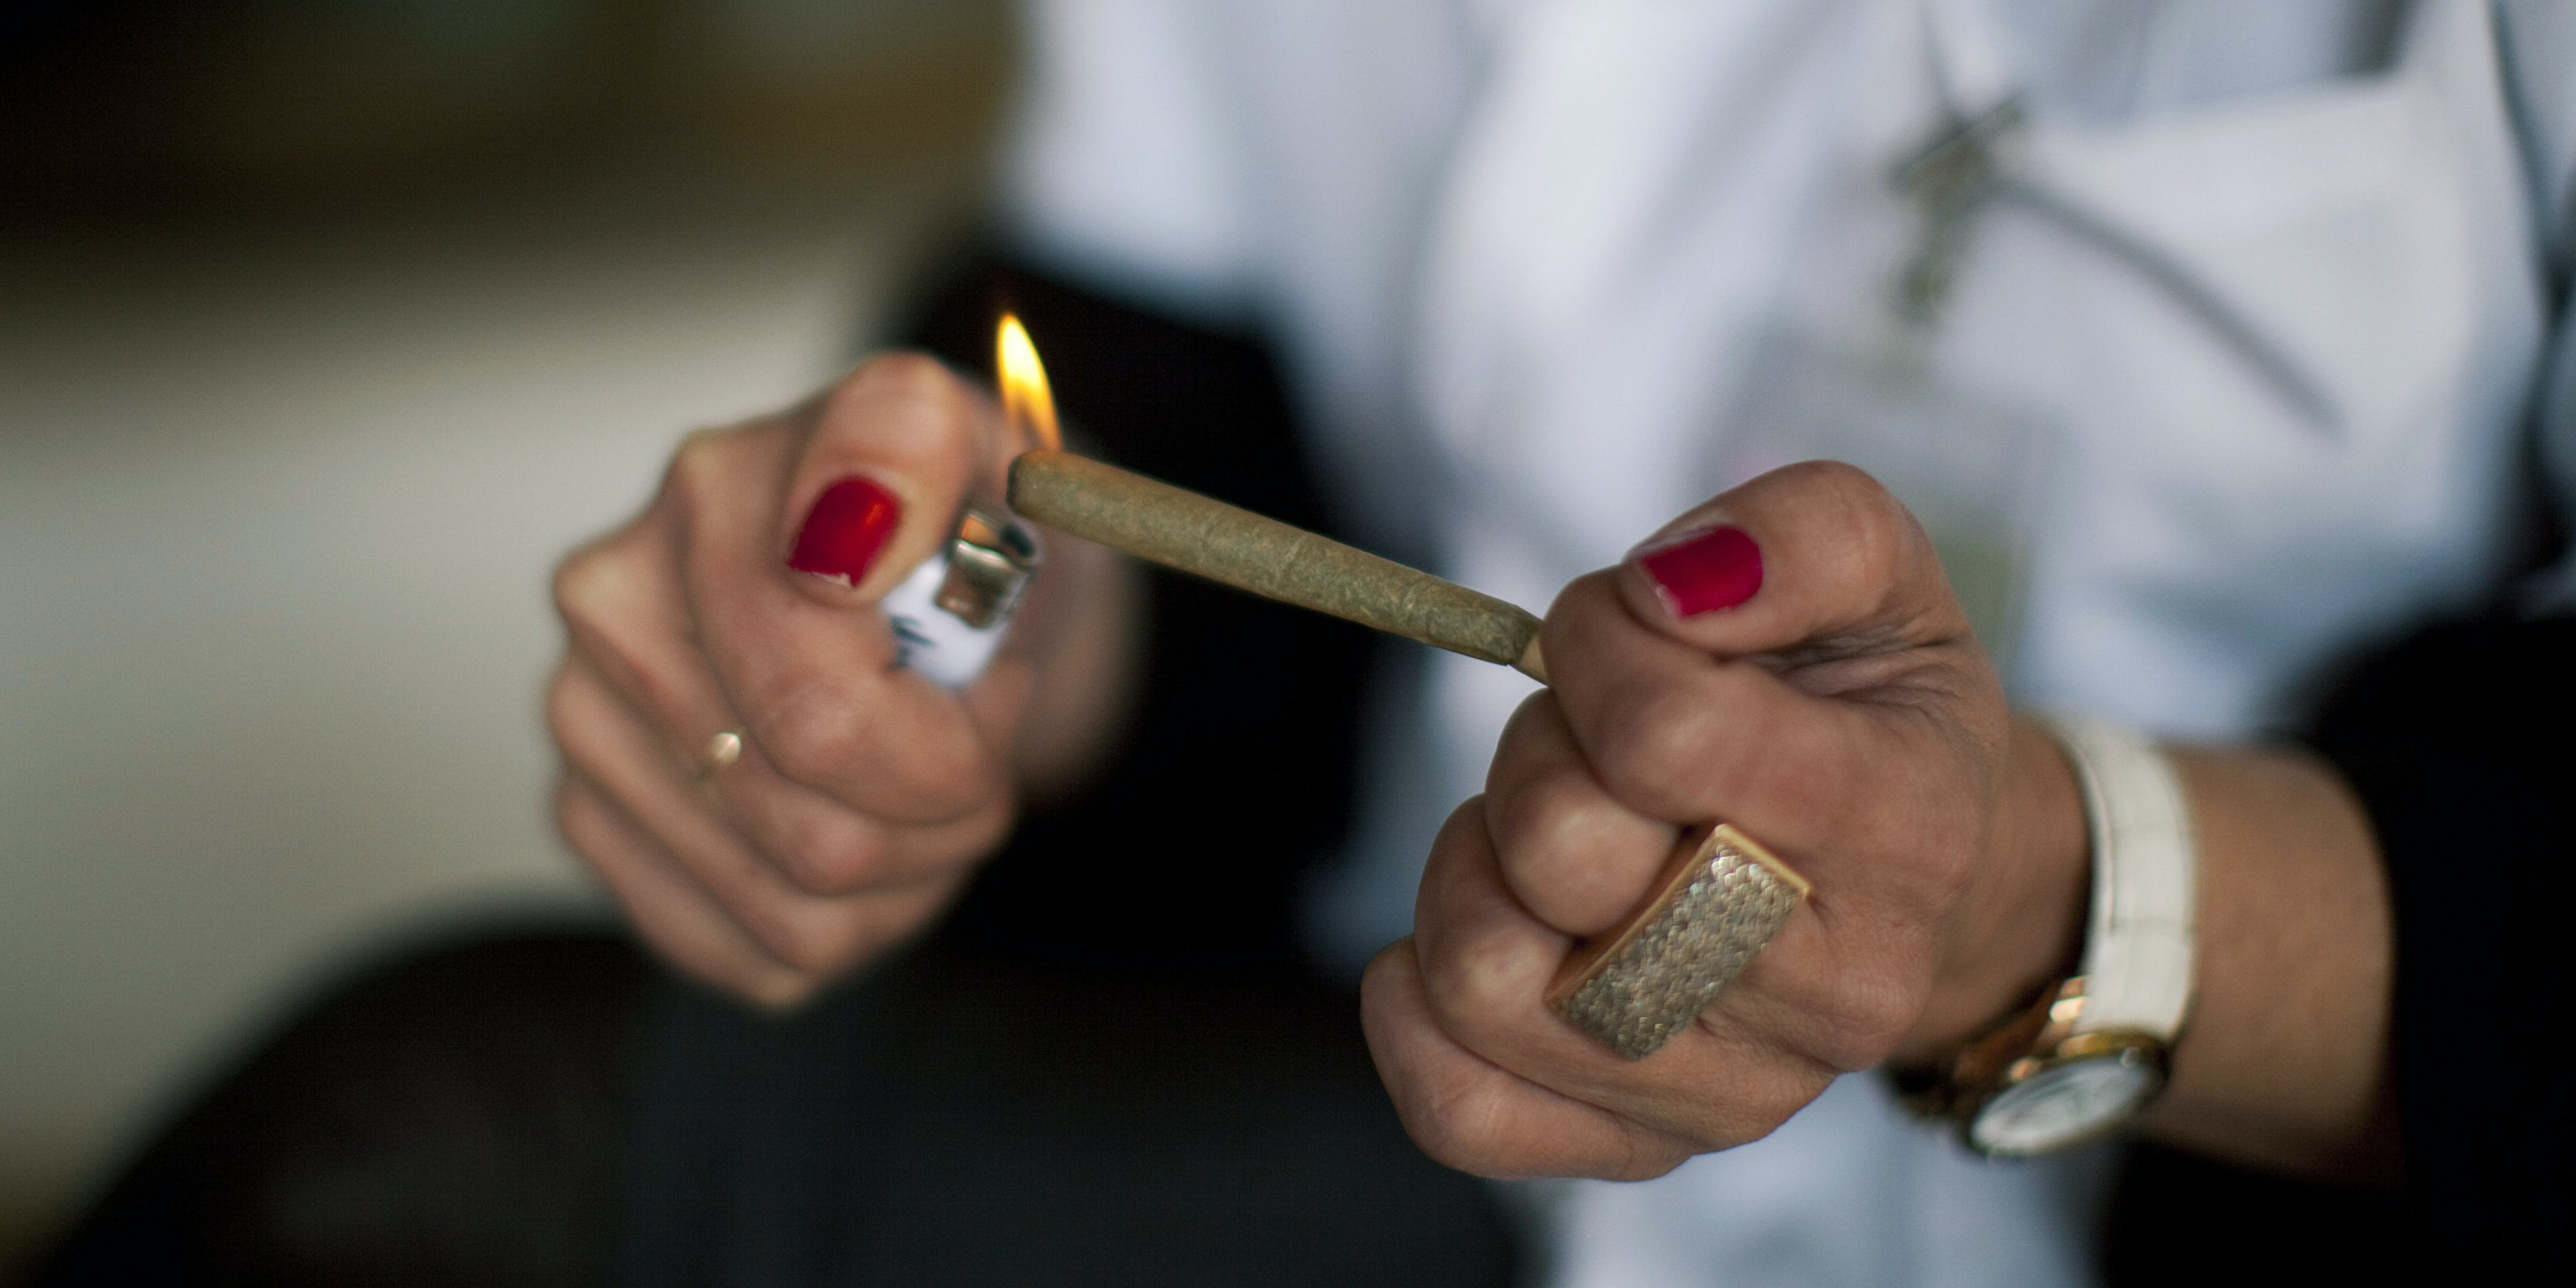 KIBUTZ NAAN, ISRAEL - MARCH 09: A nurse lights a cannabis cigarette for a patient at the Hadarim nursing home, on March 09, 2011 in Kibutz Naan, Israel. NiaMedic just announced it will bring the first clinic like it to America (Photo by Uriel Sinai/Getty Images)